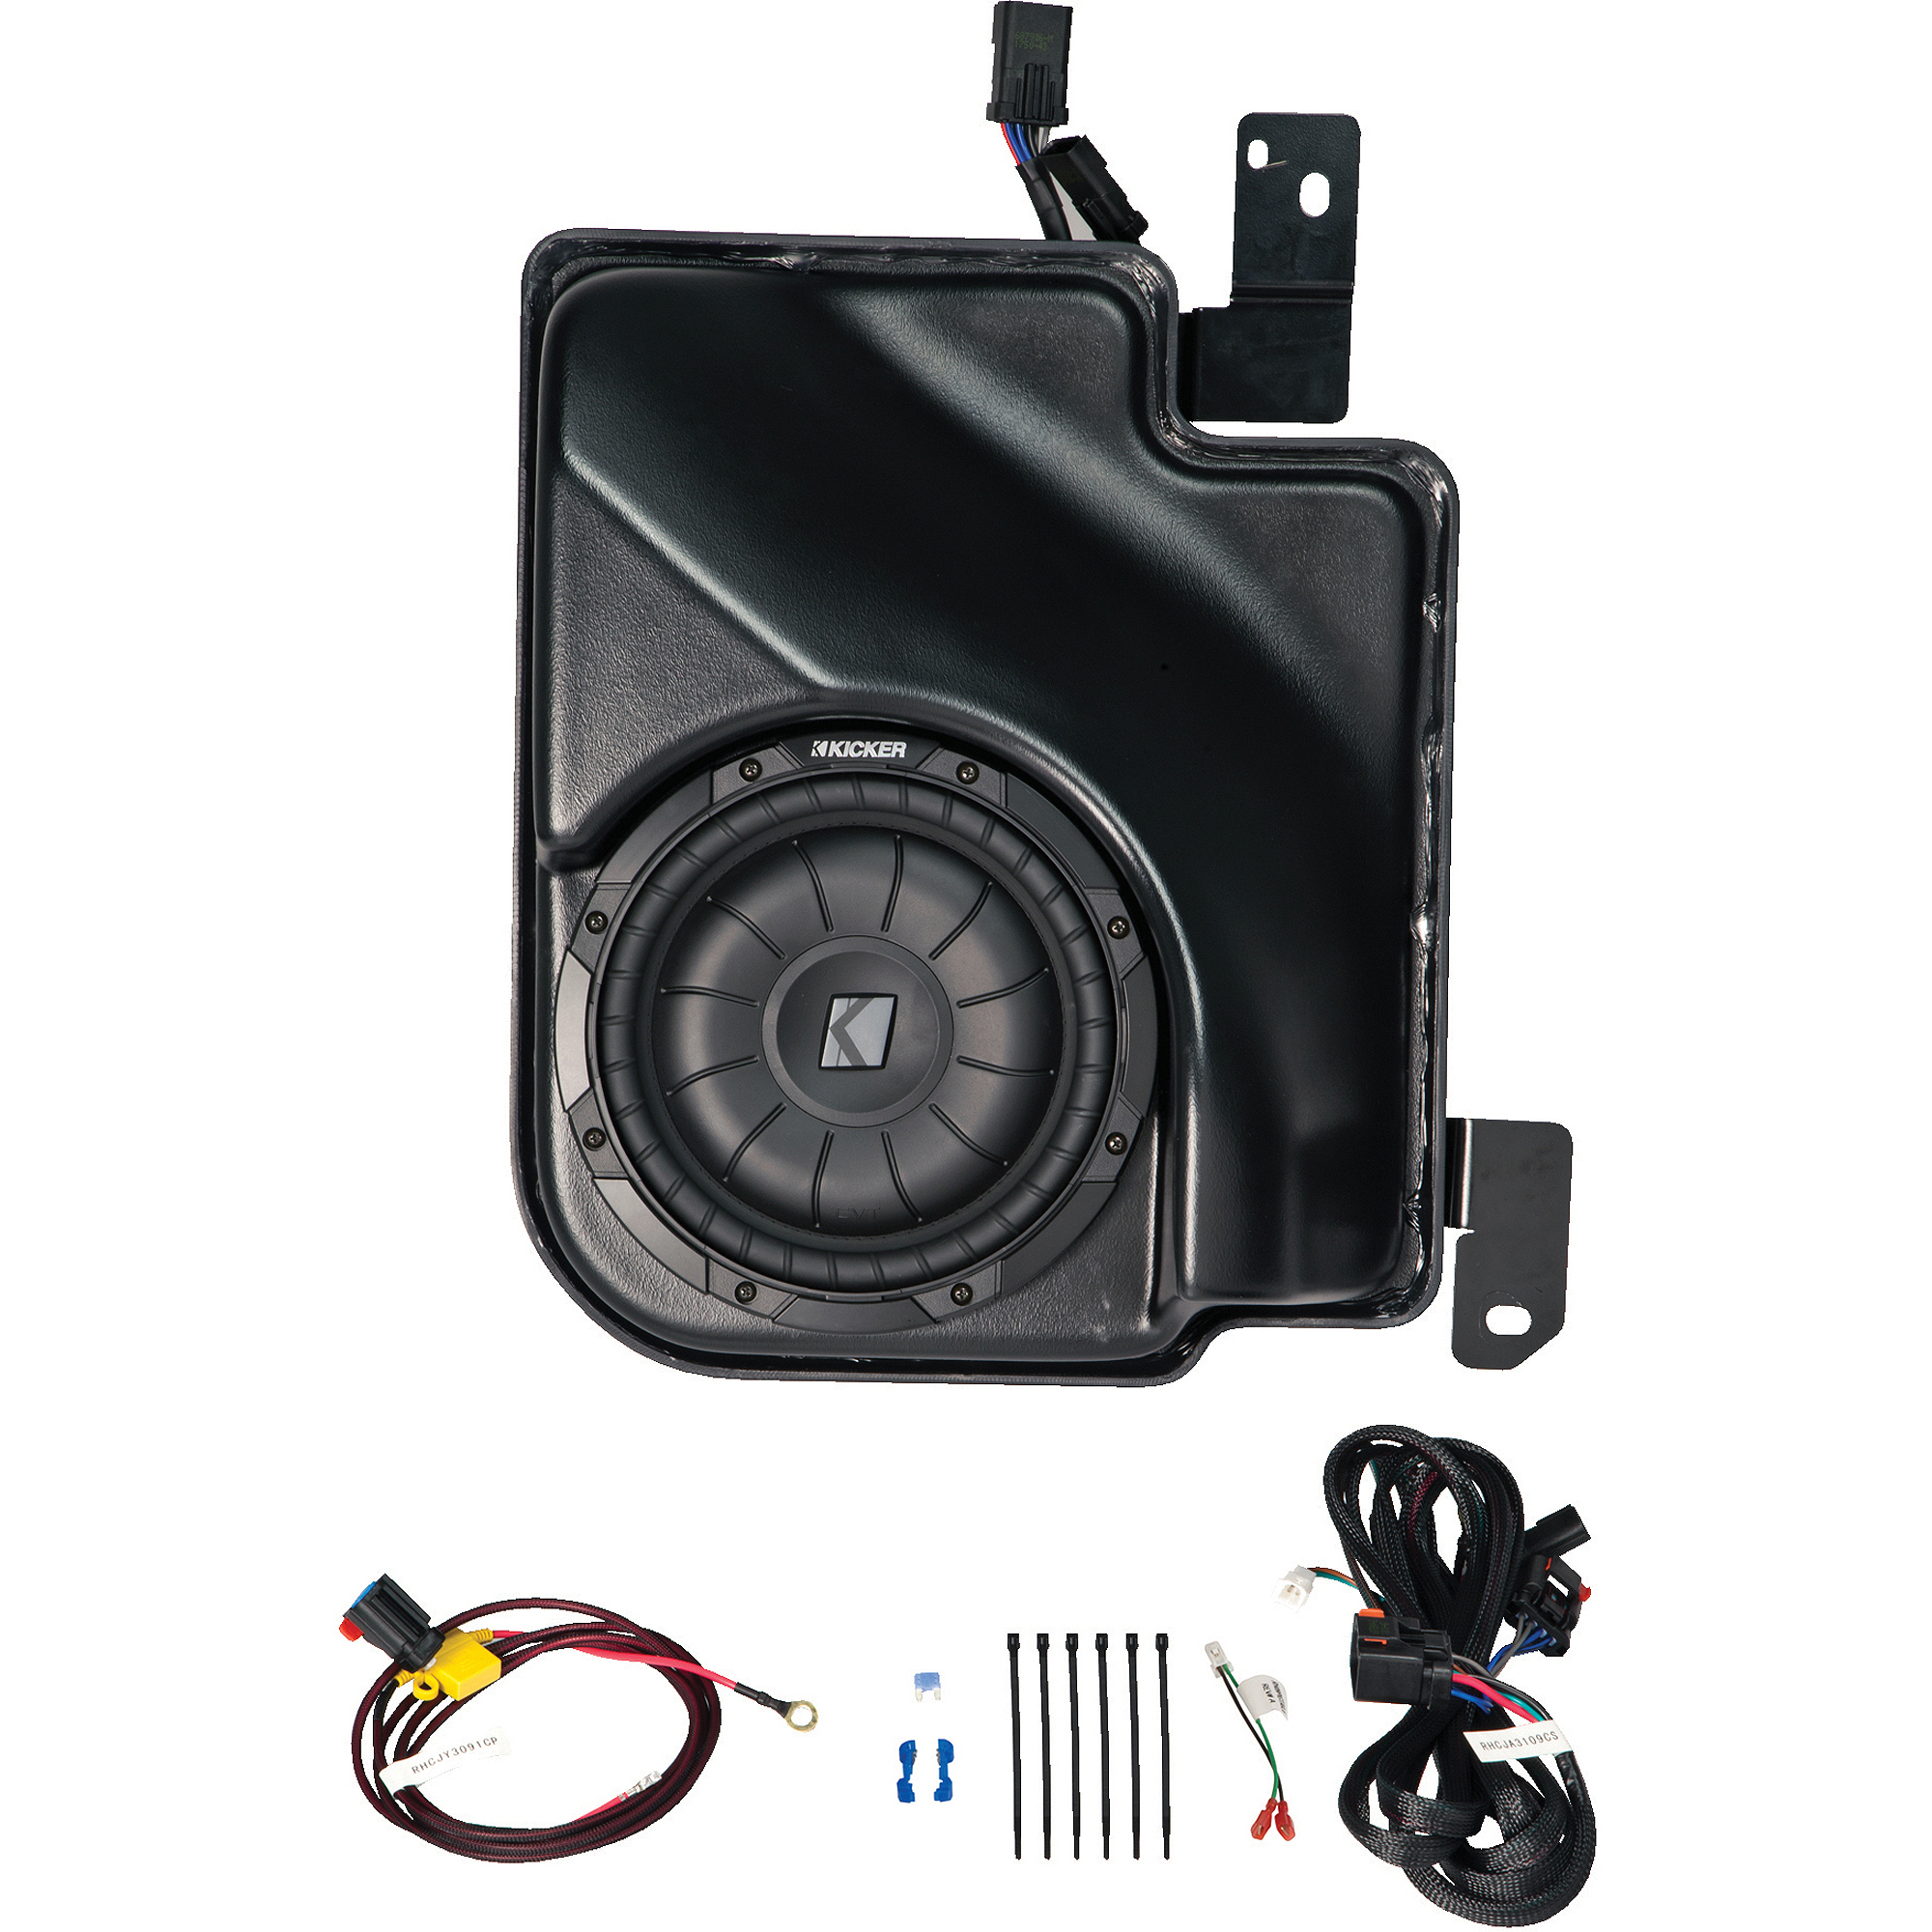 Kicker VSS SubStage Powered Subwoofer for 2014 Silverado/Sierra Extended Cab